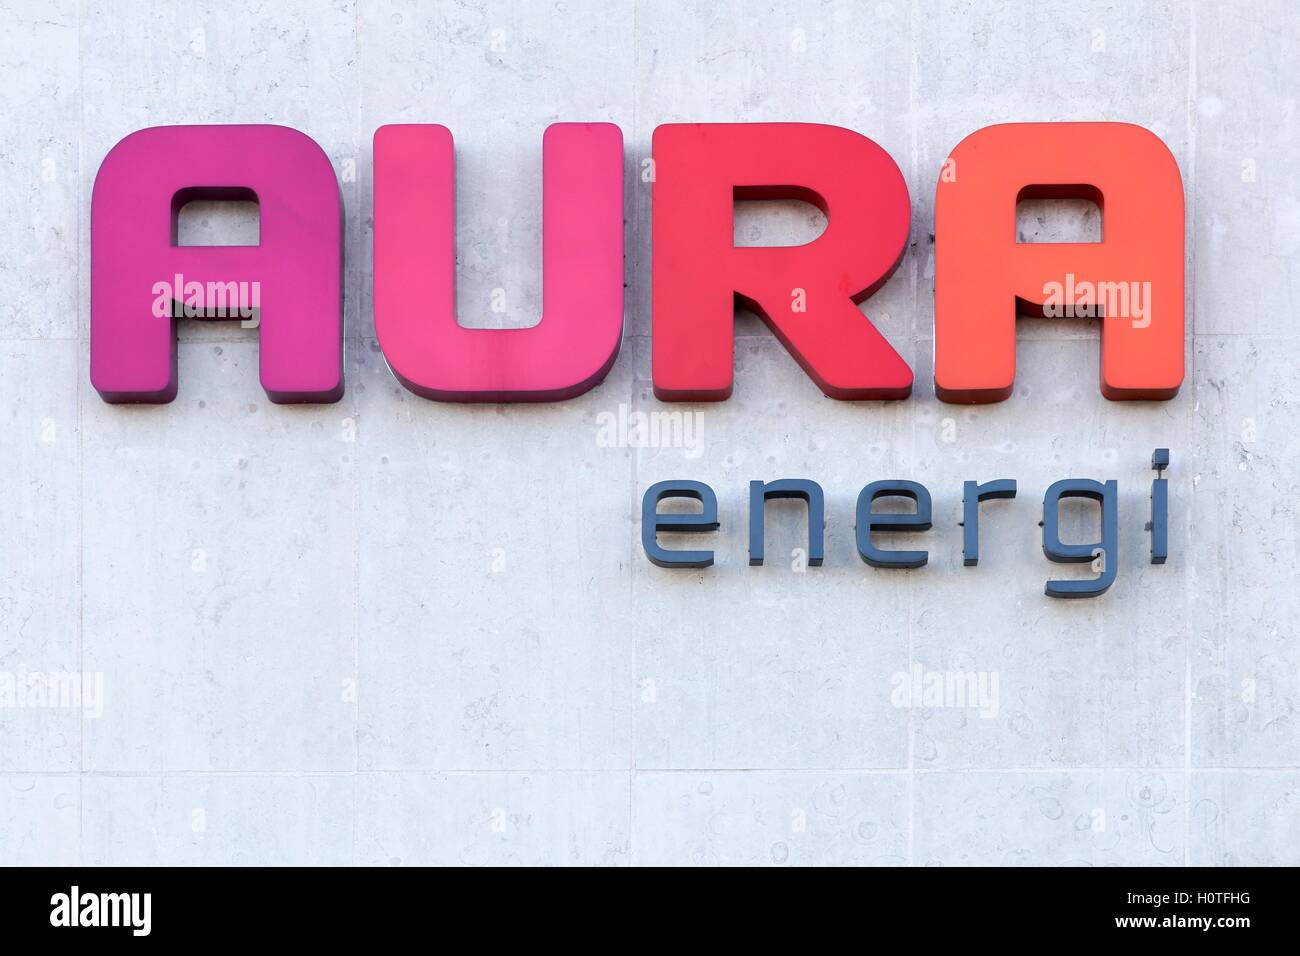 Aura Energi logo on a wall. Aura Energi provides electricity, energy, fiber, televisions and home appliances in - Stock Image